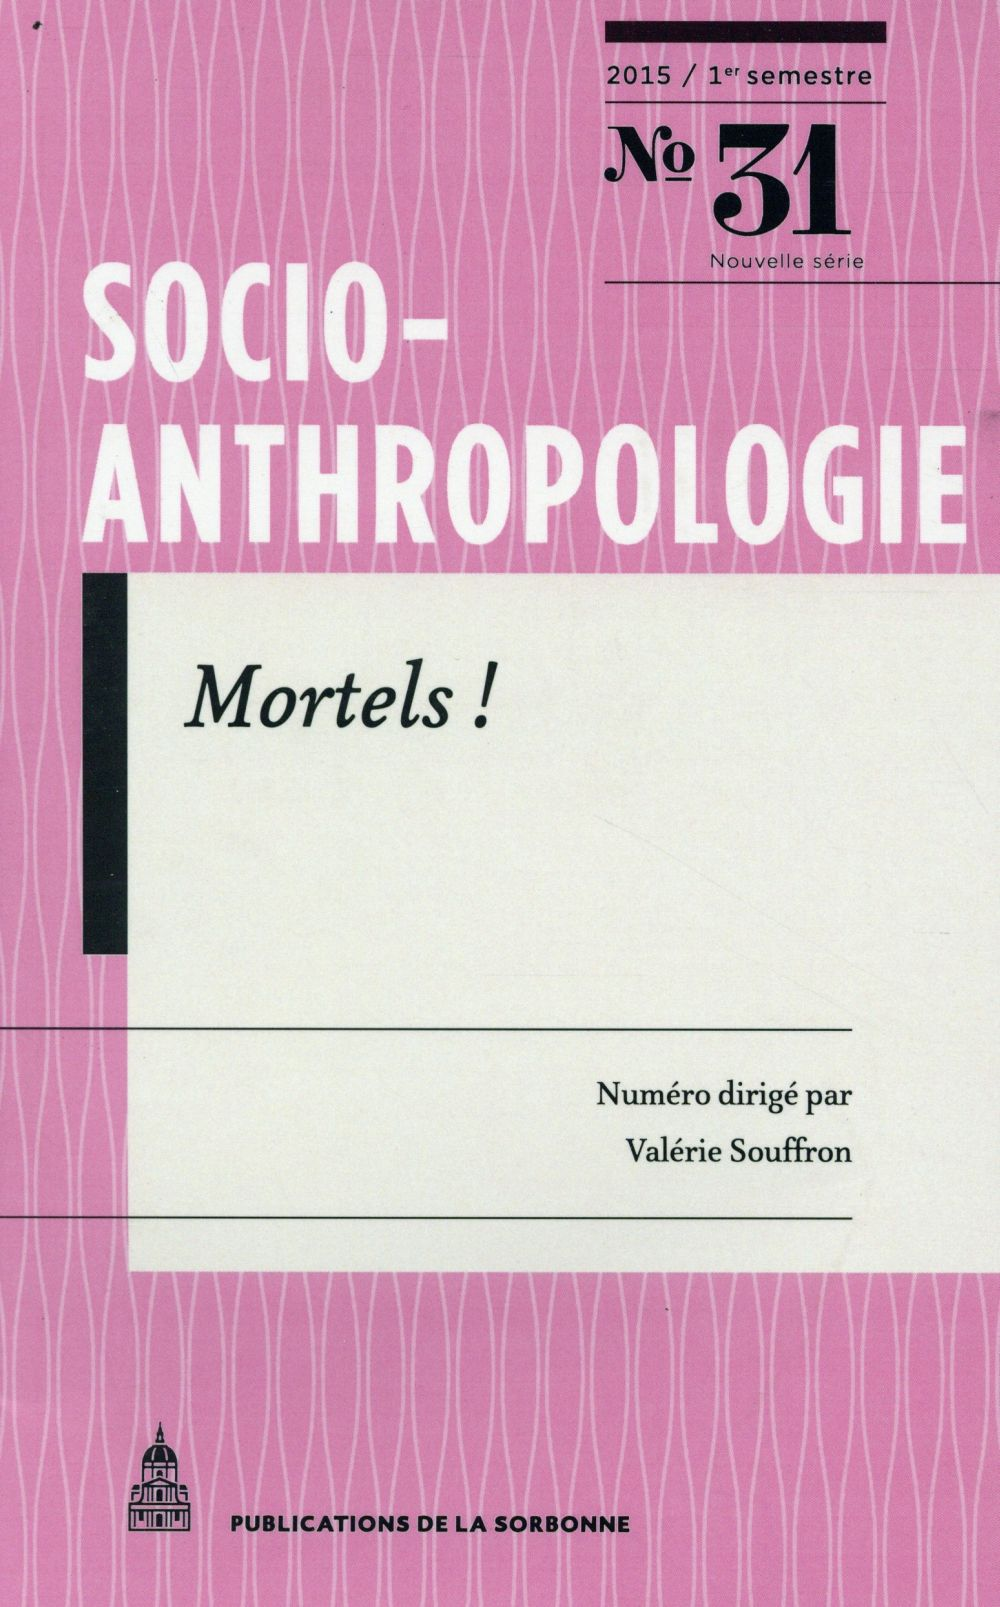 SOCIO ANTHROPOLOGIE 31 MORTELS !